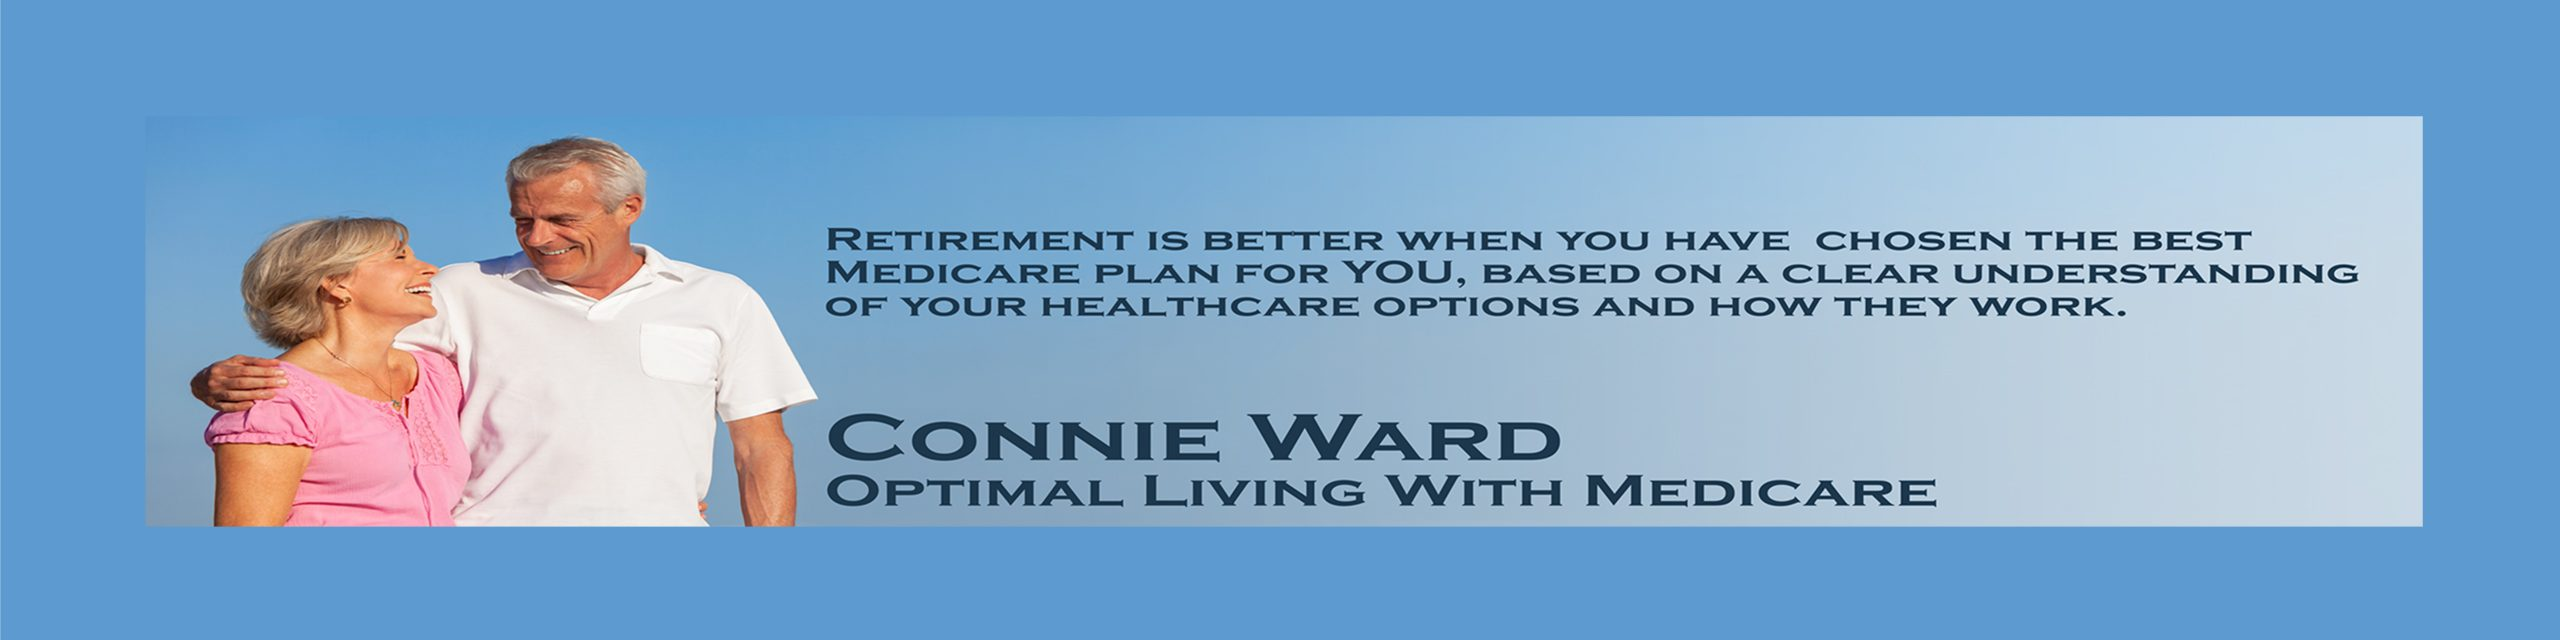 Medicare Part A | Optimal Living With Medicare